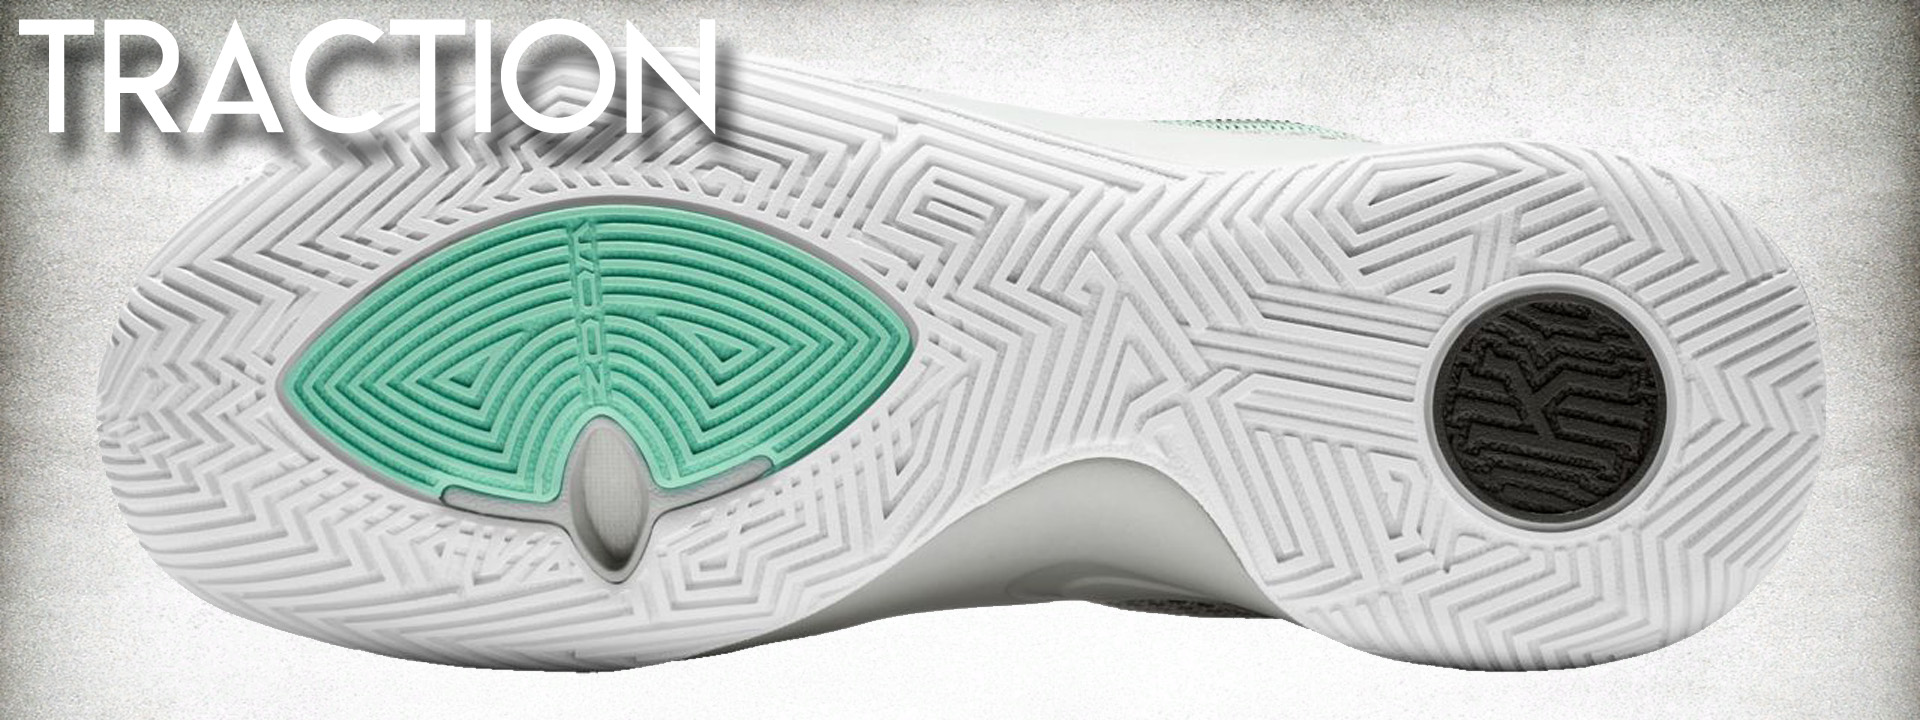 new concept 8f431 869d9 Nike-Kyrie-Flytrap-2-Performance-Review-Traction